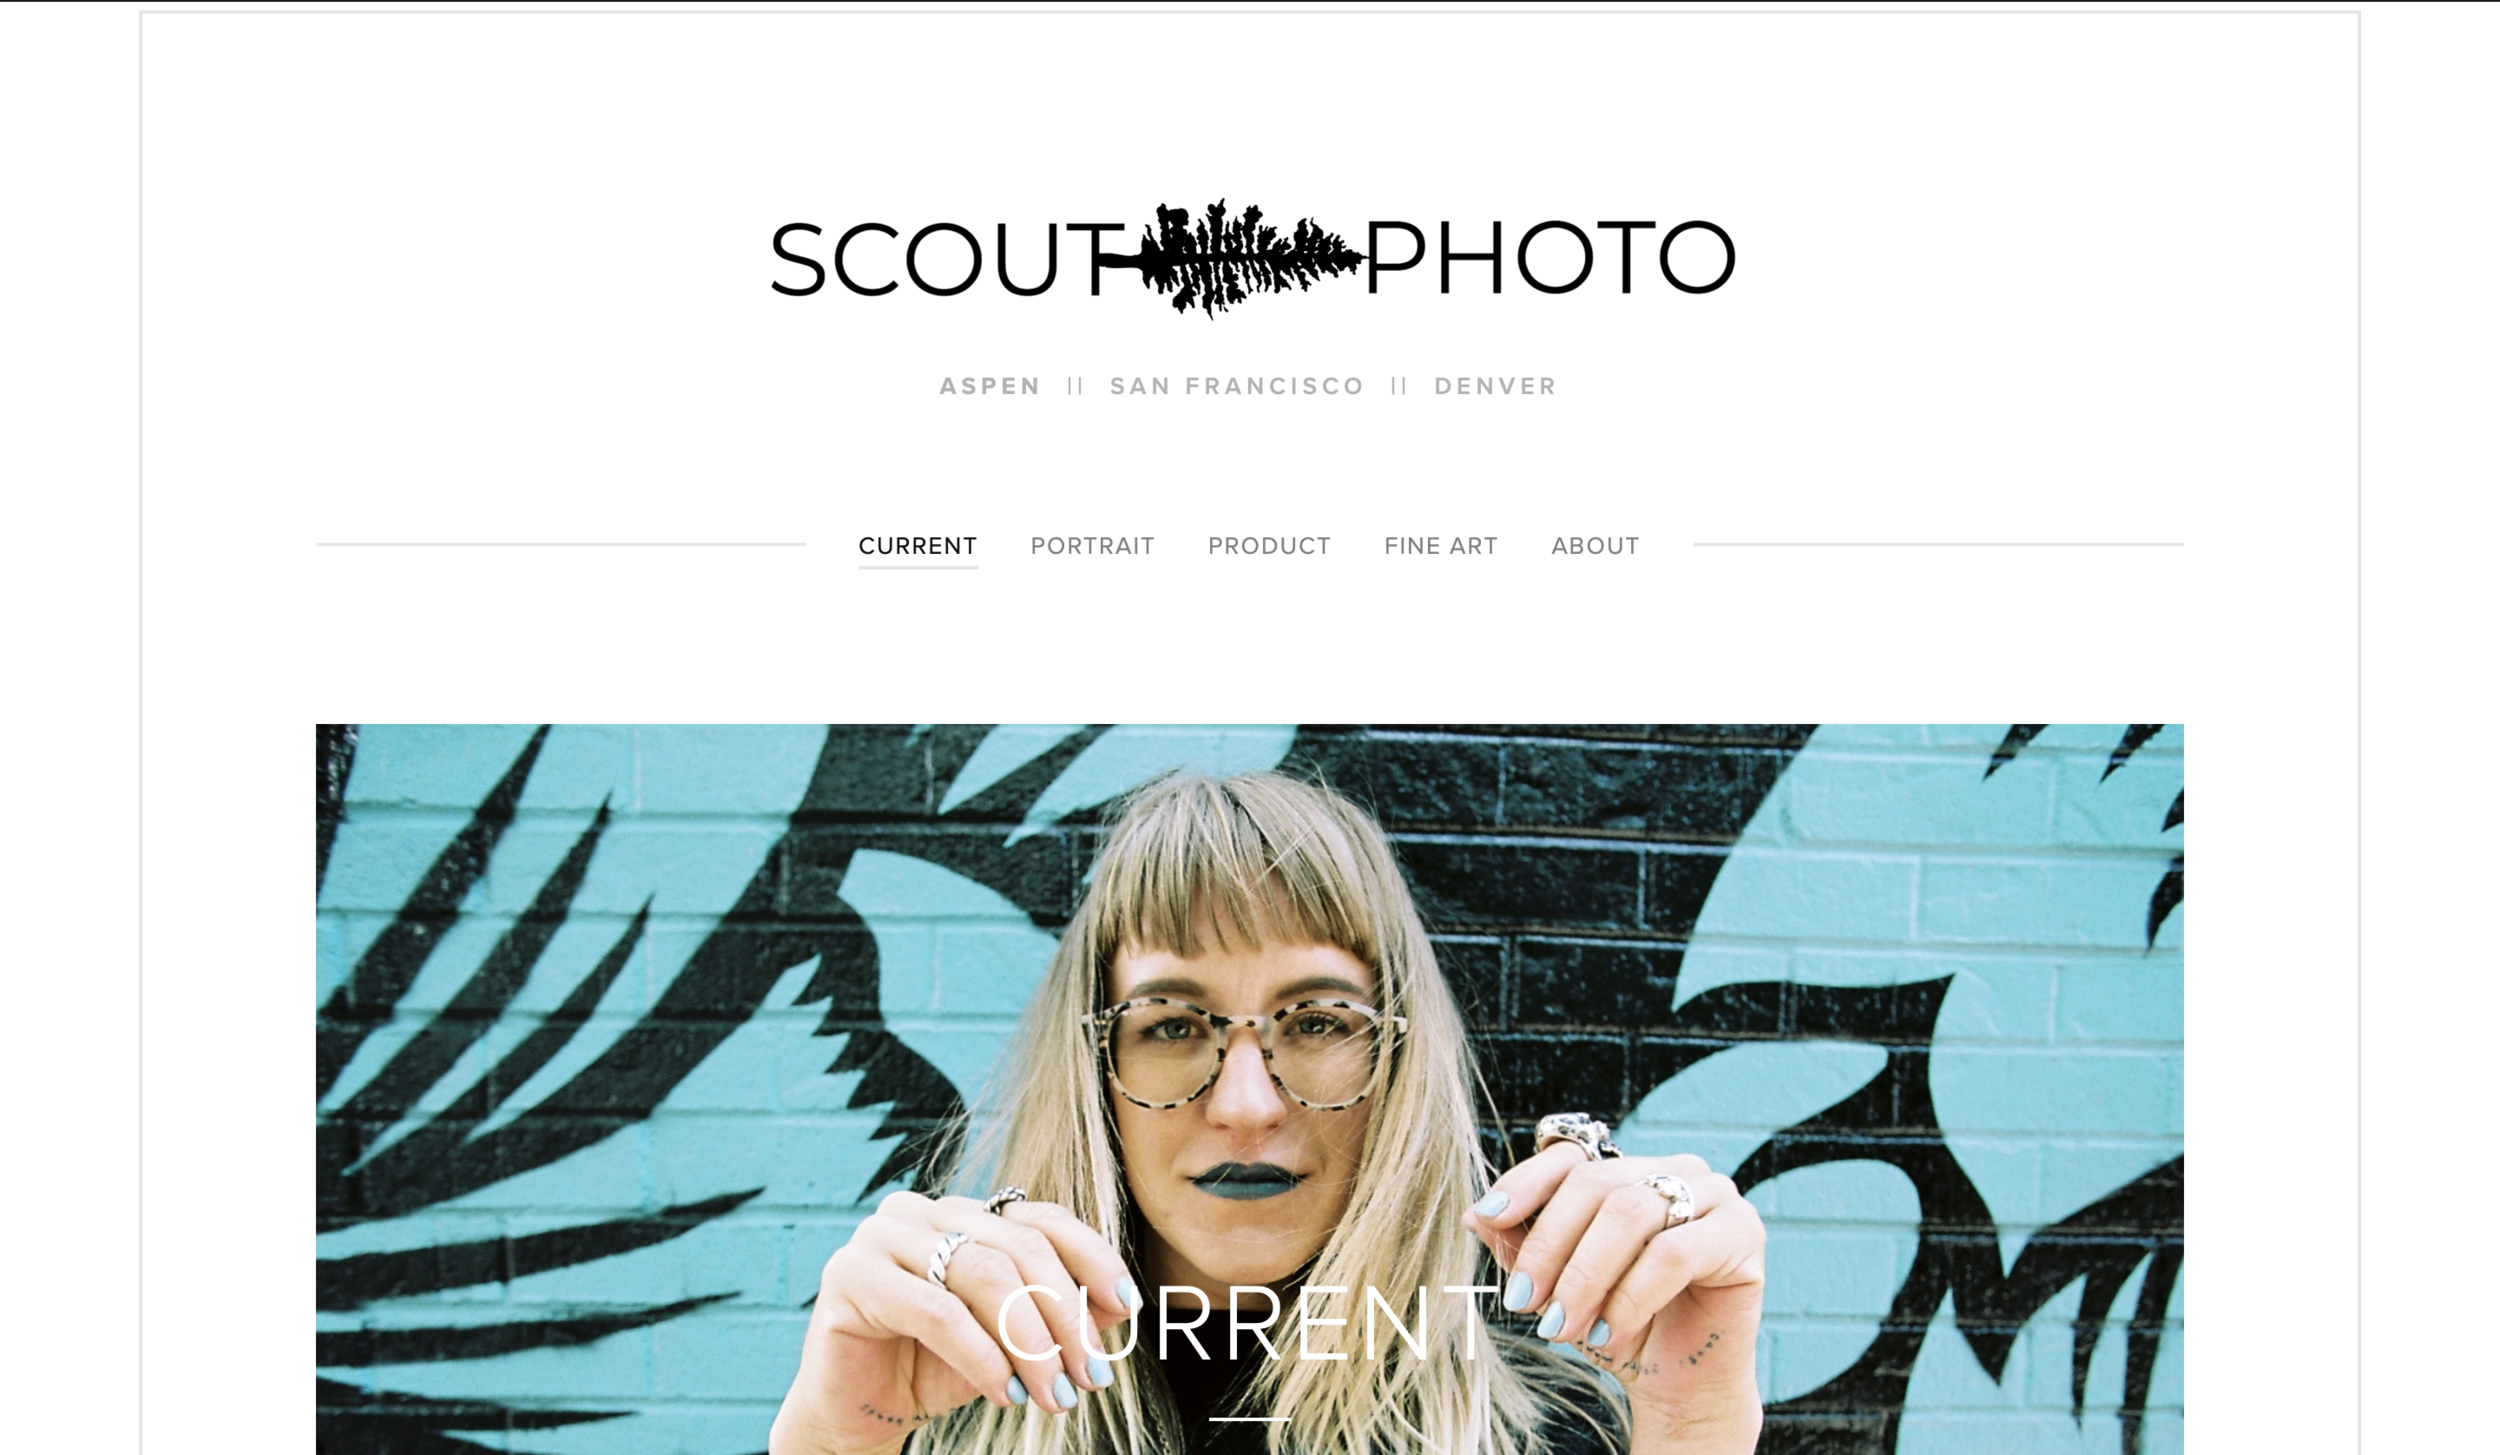 SCOUT PHOTOGRAPHY - FEMALE FILM PHOTOGRAPHERWWW.SCOUTPHOTO.WORKSERVICE|| WEBSITE